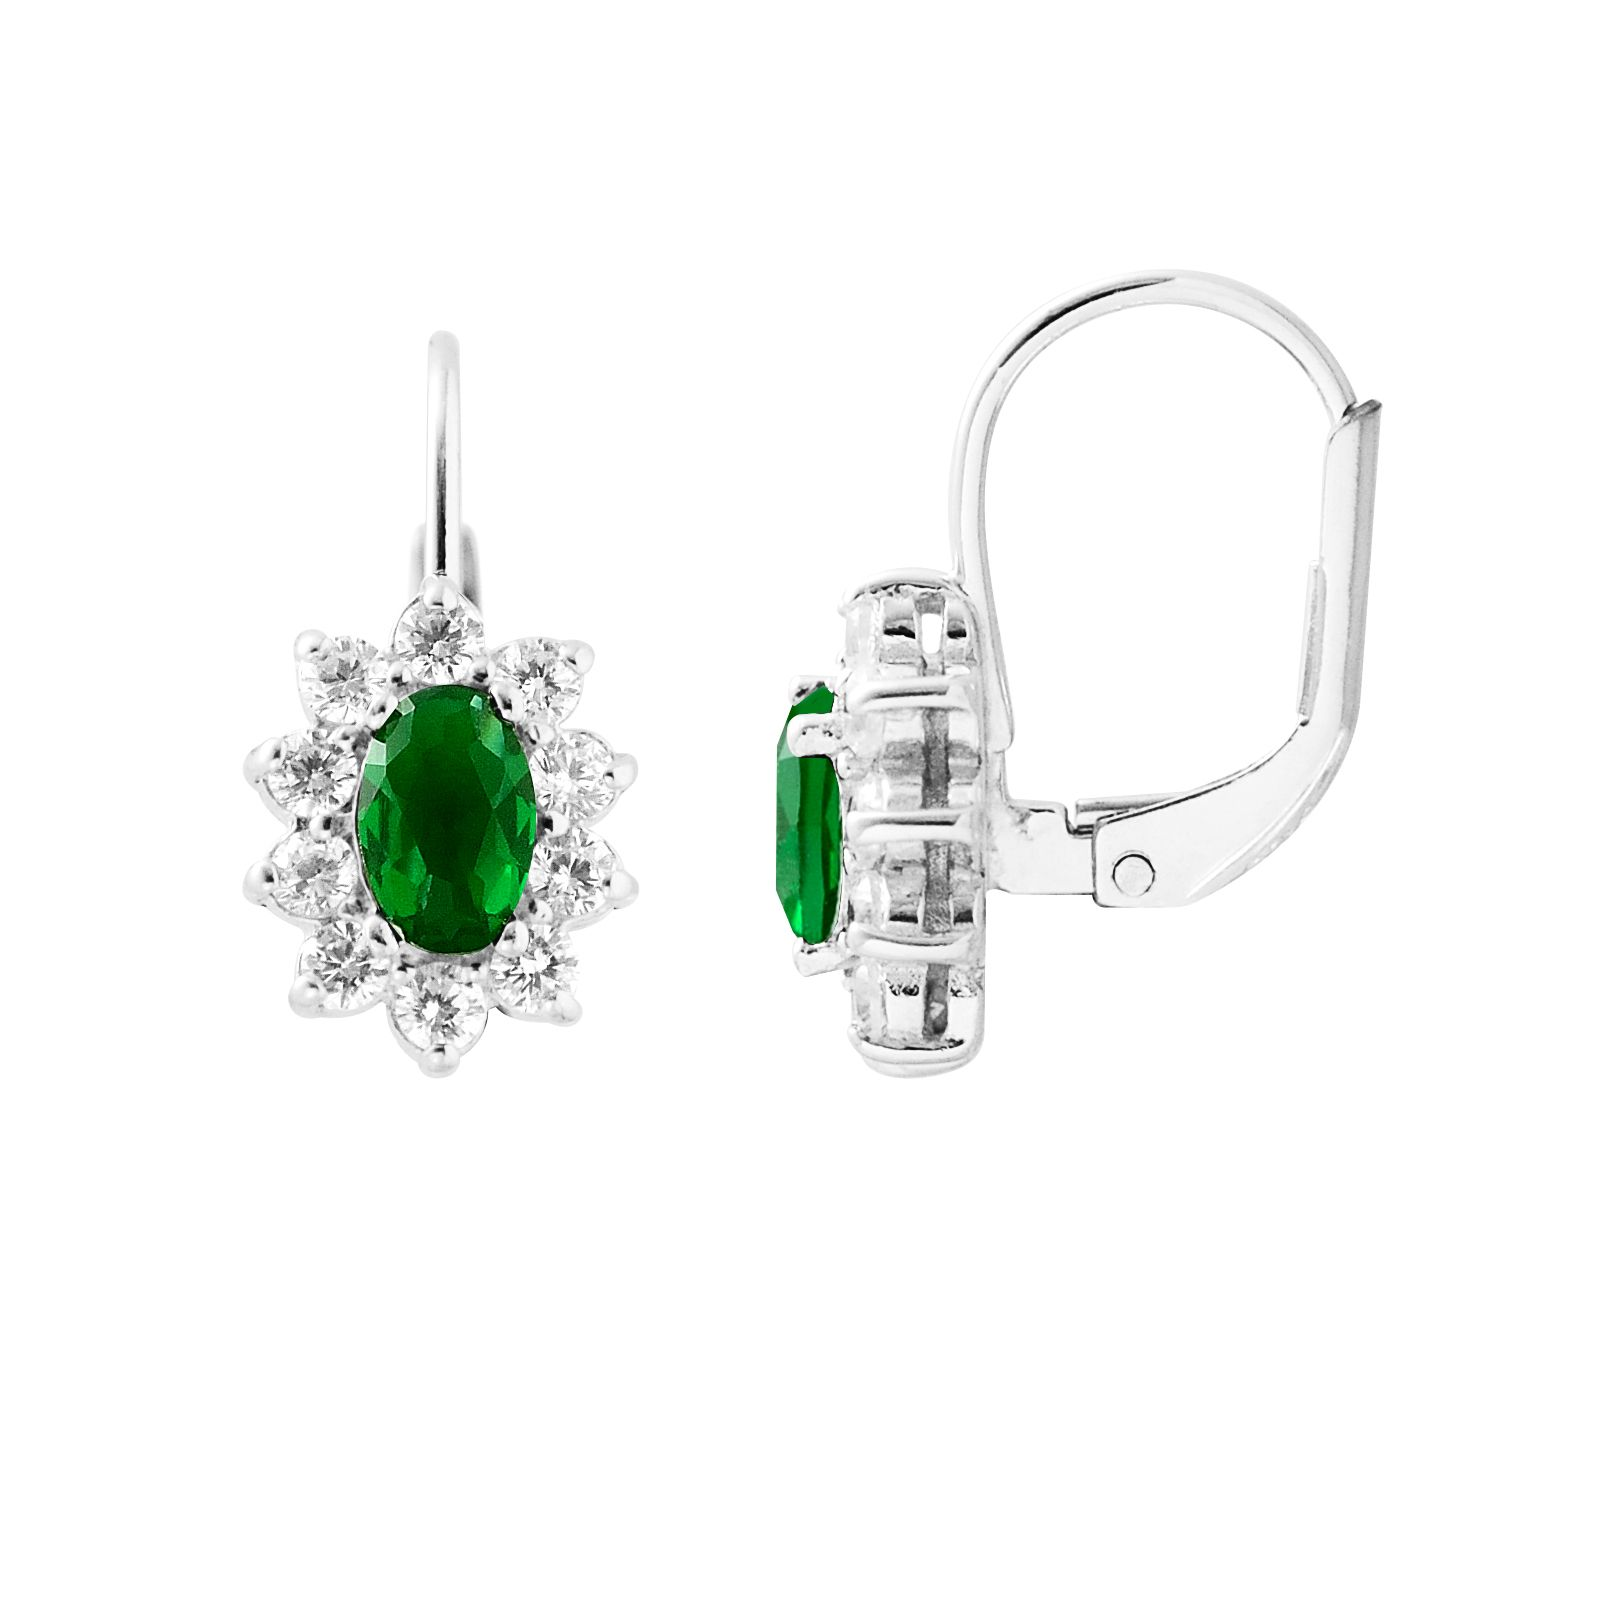 DIADEMA - Earrings - Haute Joaillerie - Love Jewelry Collection